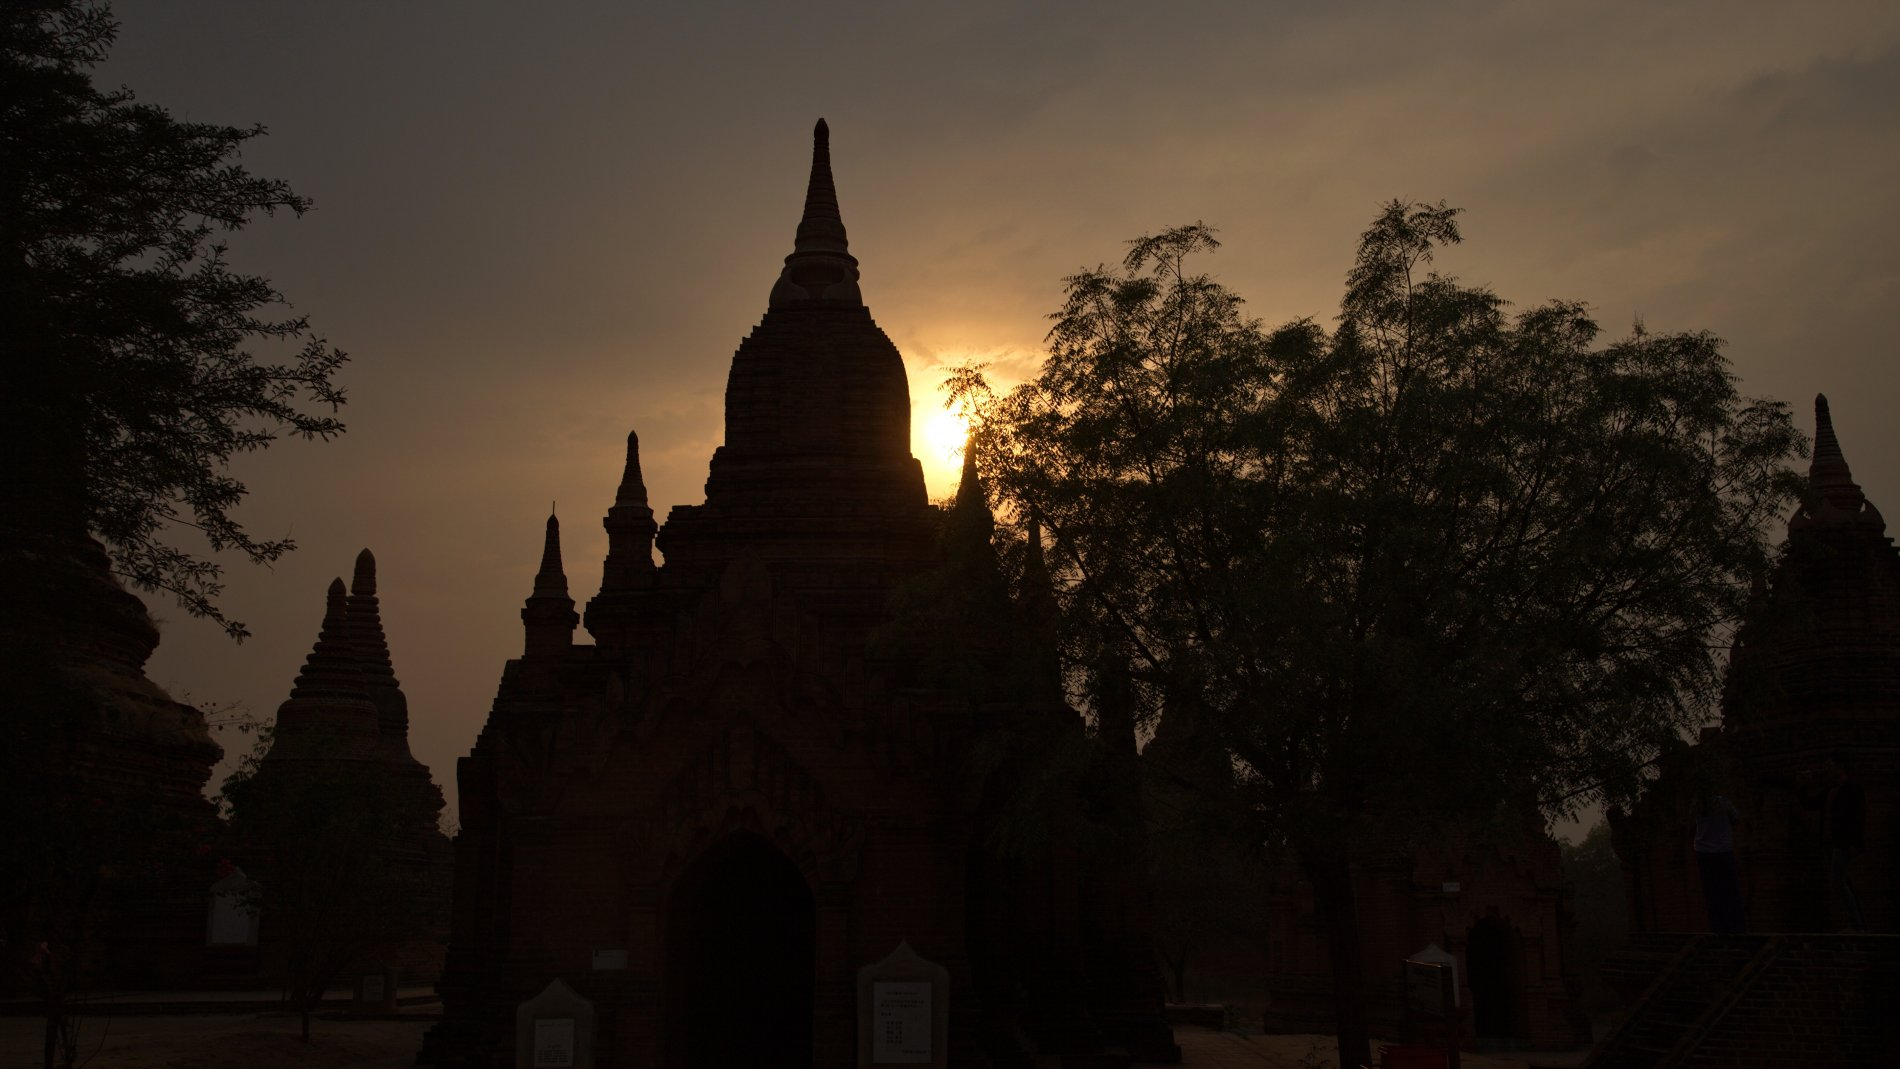 Bagan_163.jpg-commment